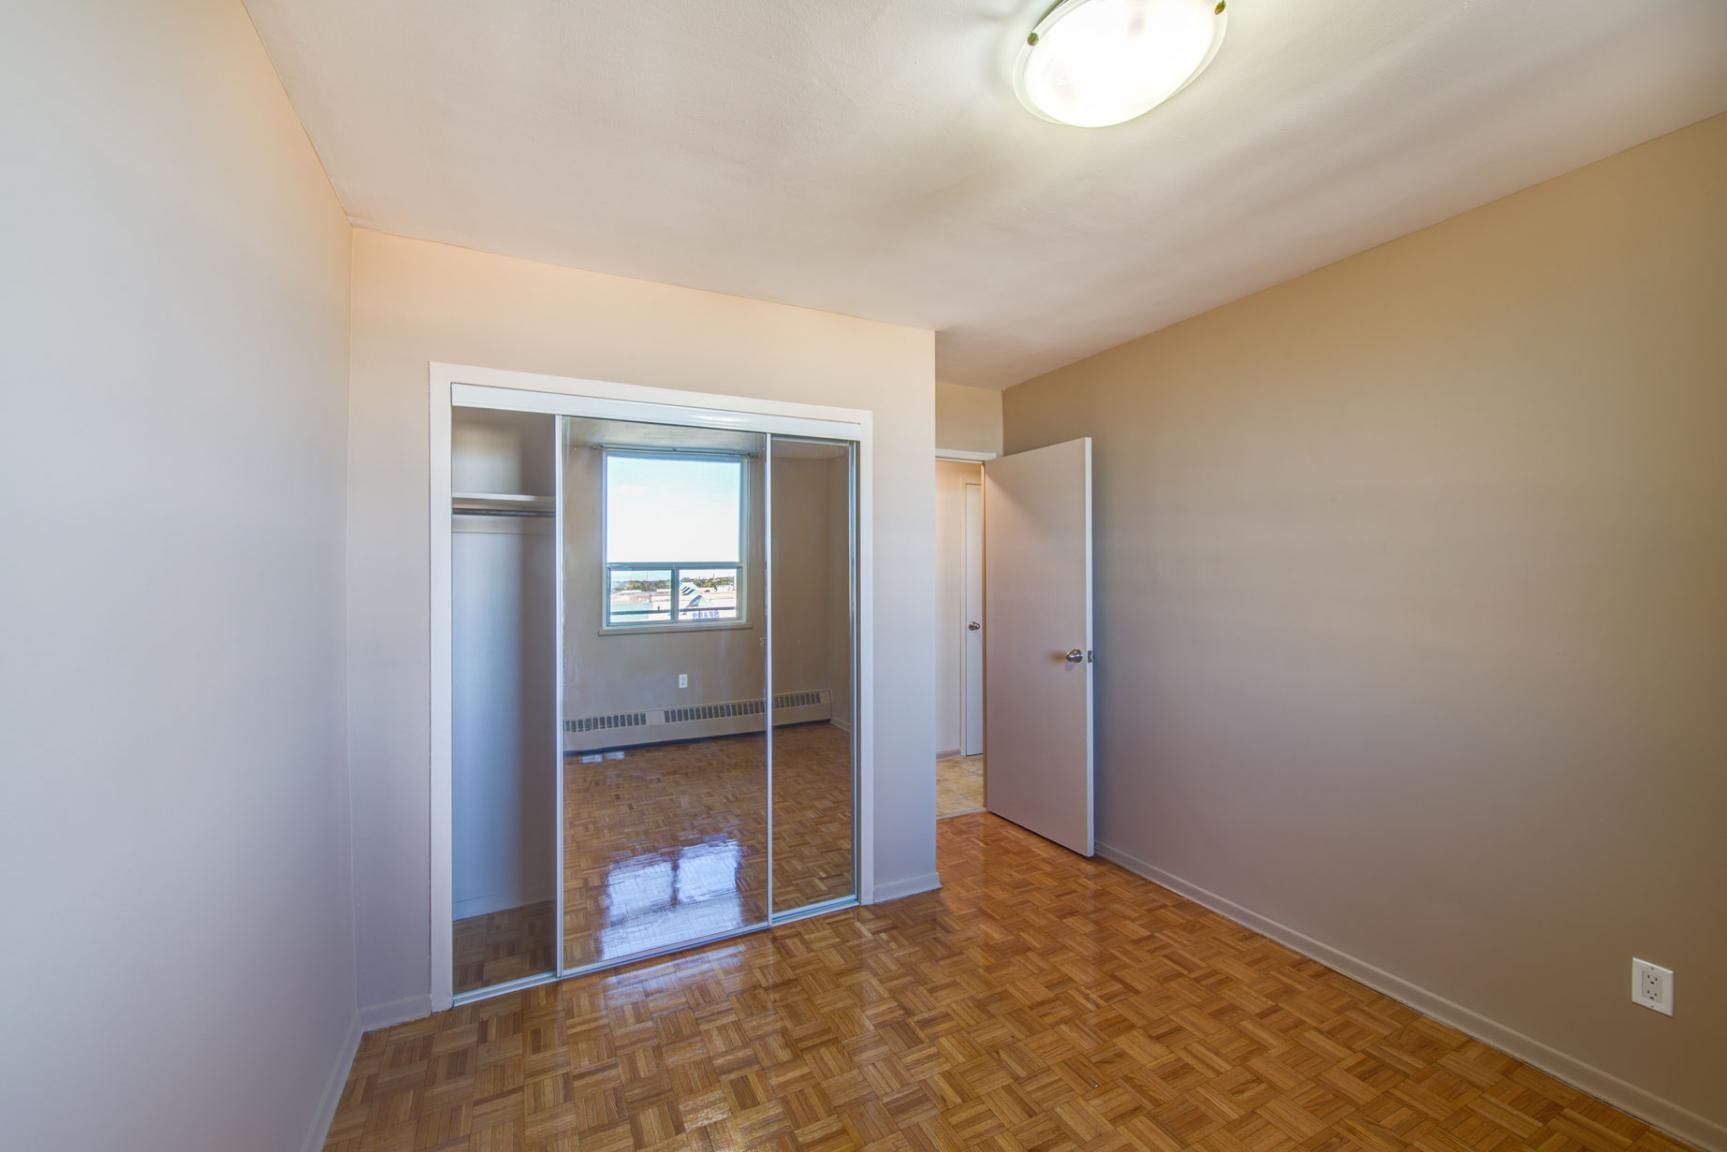 1 bedroom Apartments for rent in North-York at Hunters Lodge - Photo 41 - RentersPages – L400651